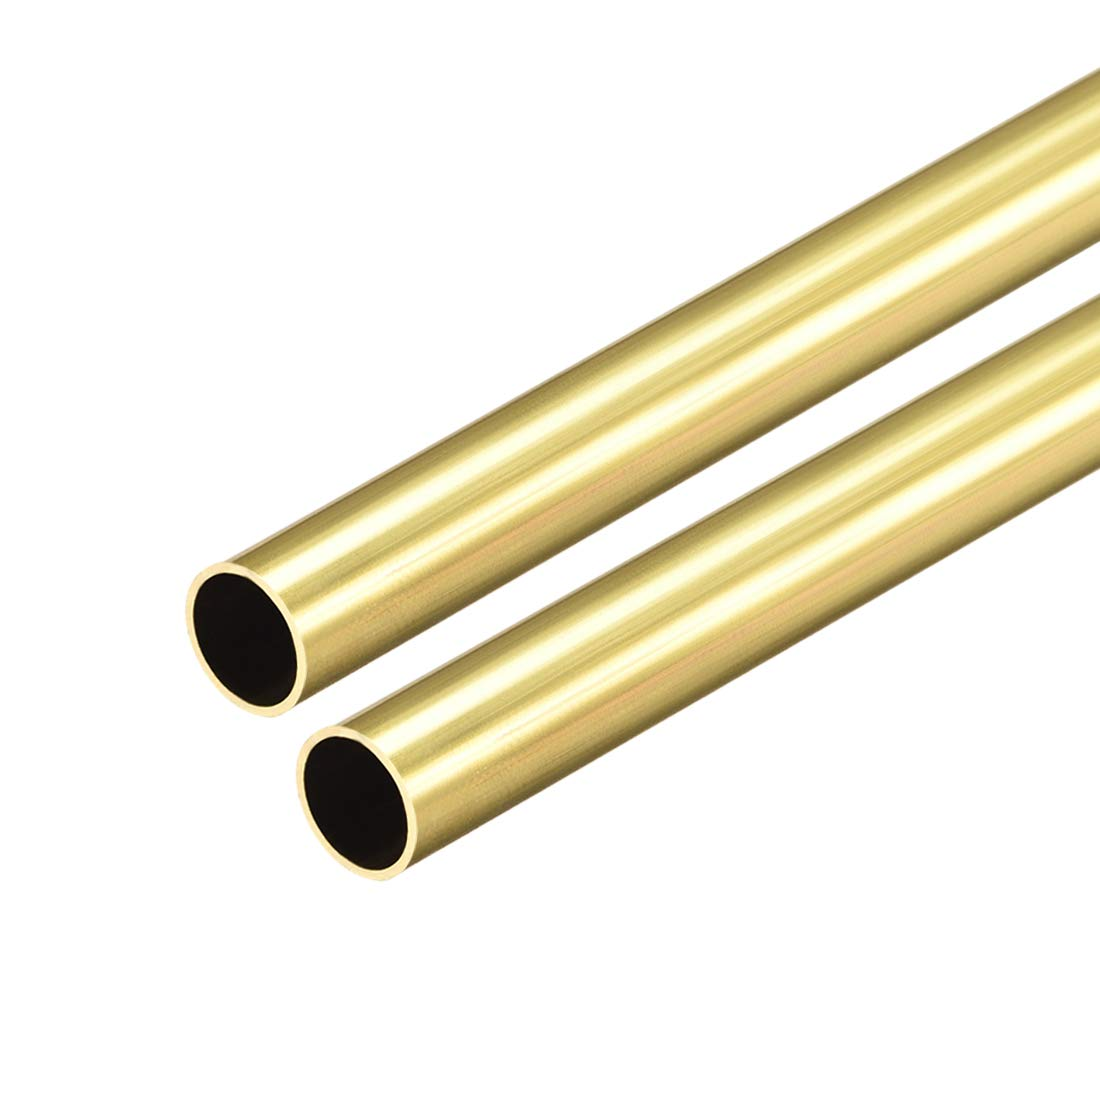 uxcell Brass Round Tube, 300mm Length 9mm OD 0.5mm Wall Thickness, Seamless Straight Pipe Tubing 2 Pcs